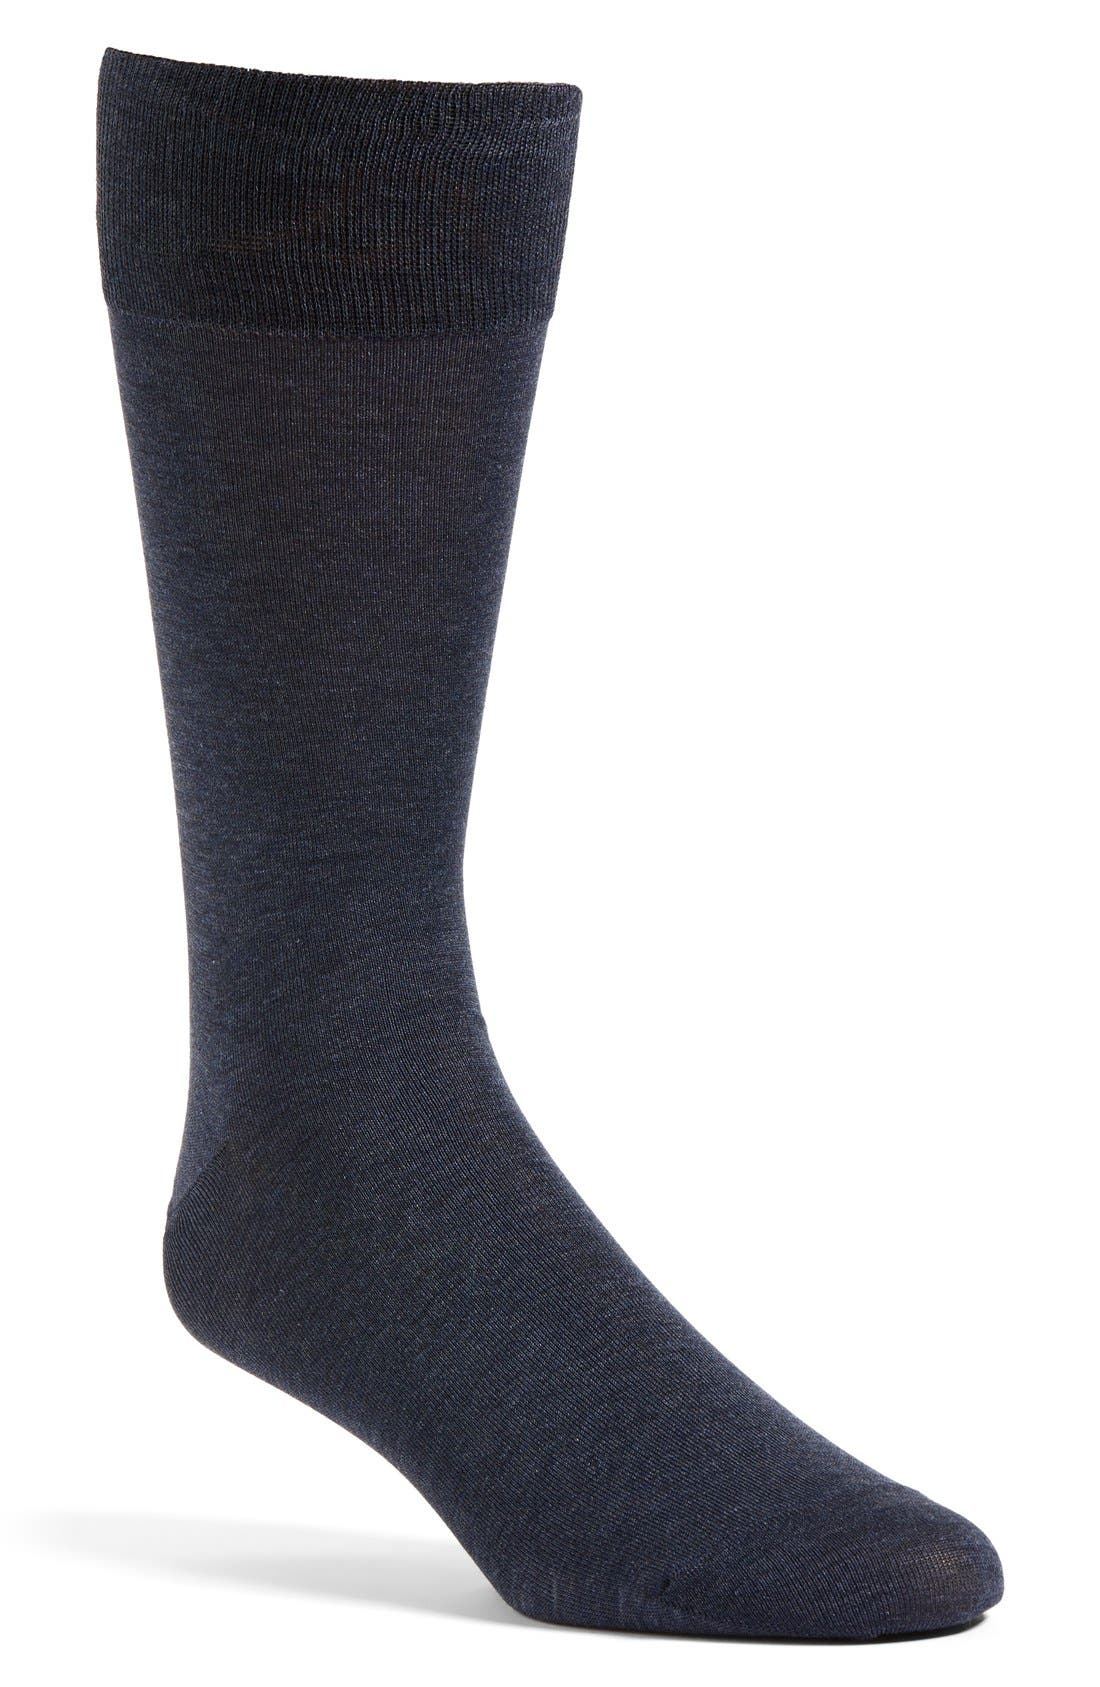 Alternate Image 1 Selected - John W. Nordstrom® Socks (Men) (3 for $40)